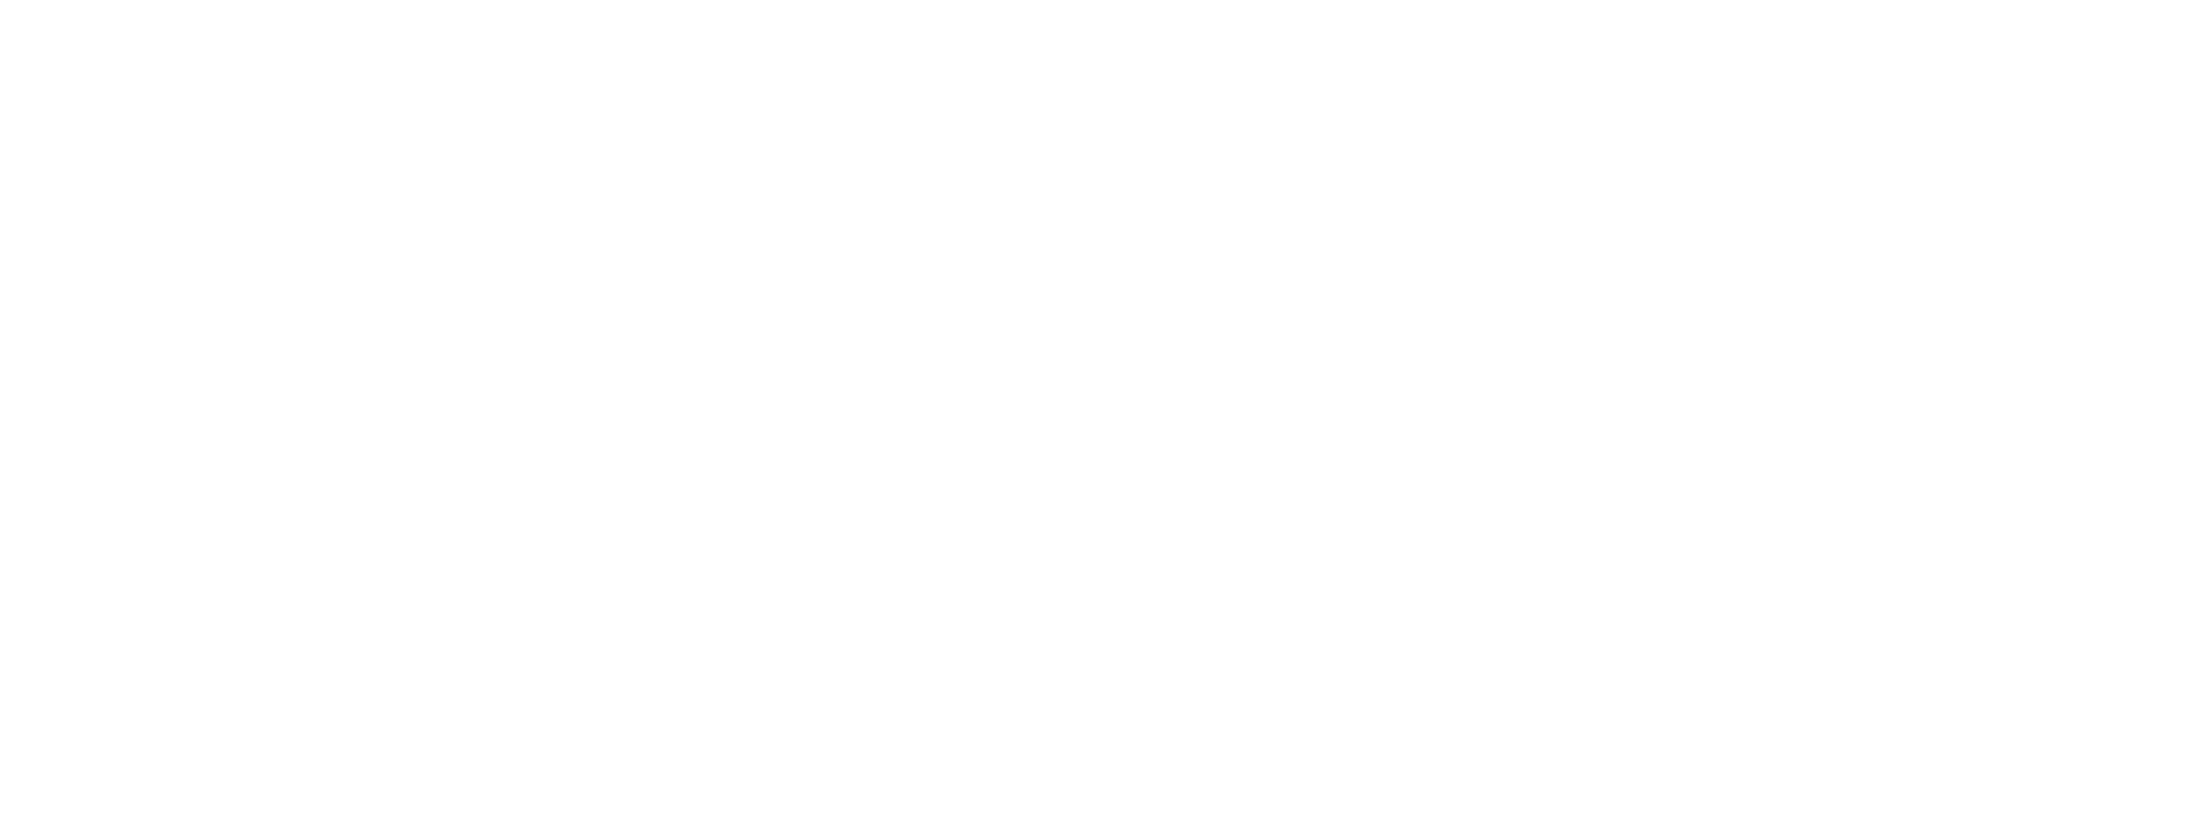 Mathison Interiors Showroom